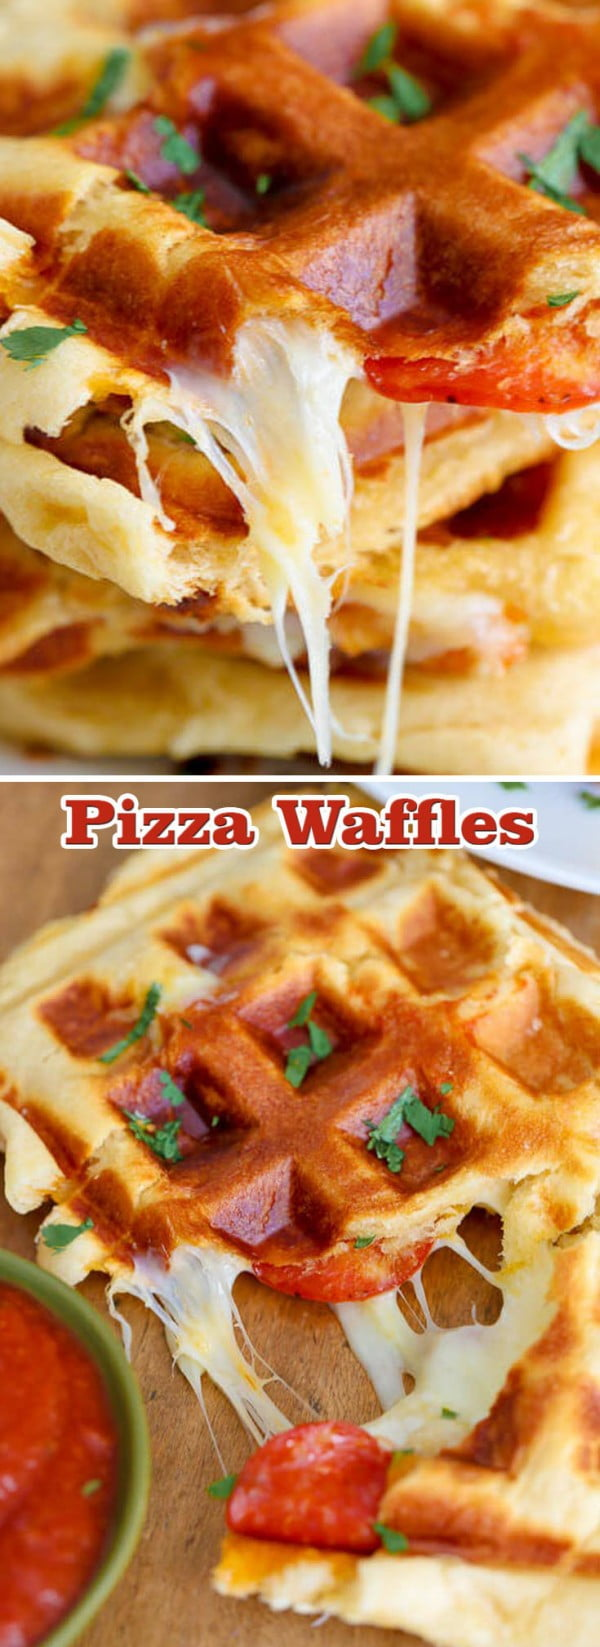 Pizza Waffles #wallfeiron #wafflemaker #waffles #dinner #snacks #lunch #food #recipe